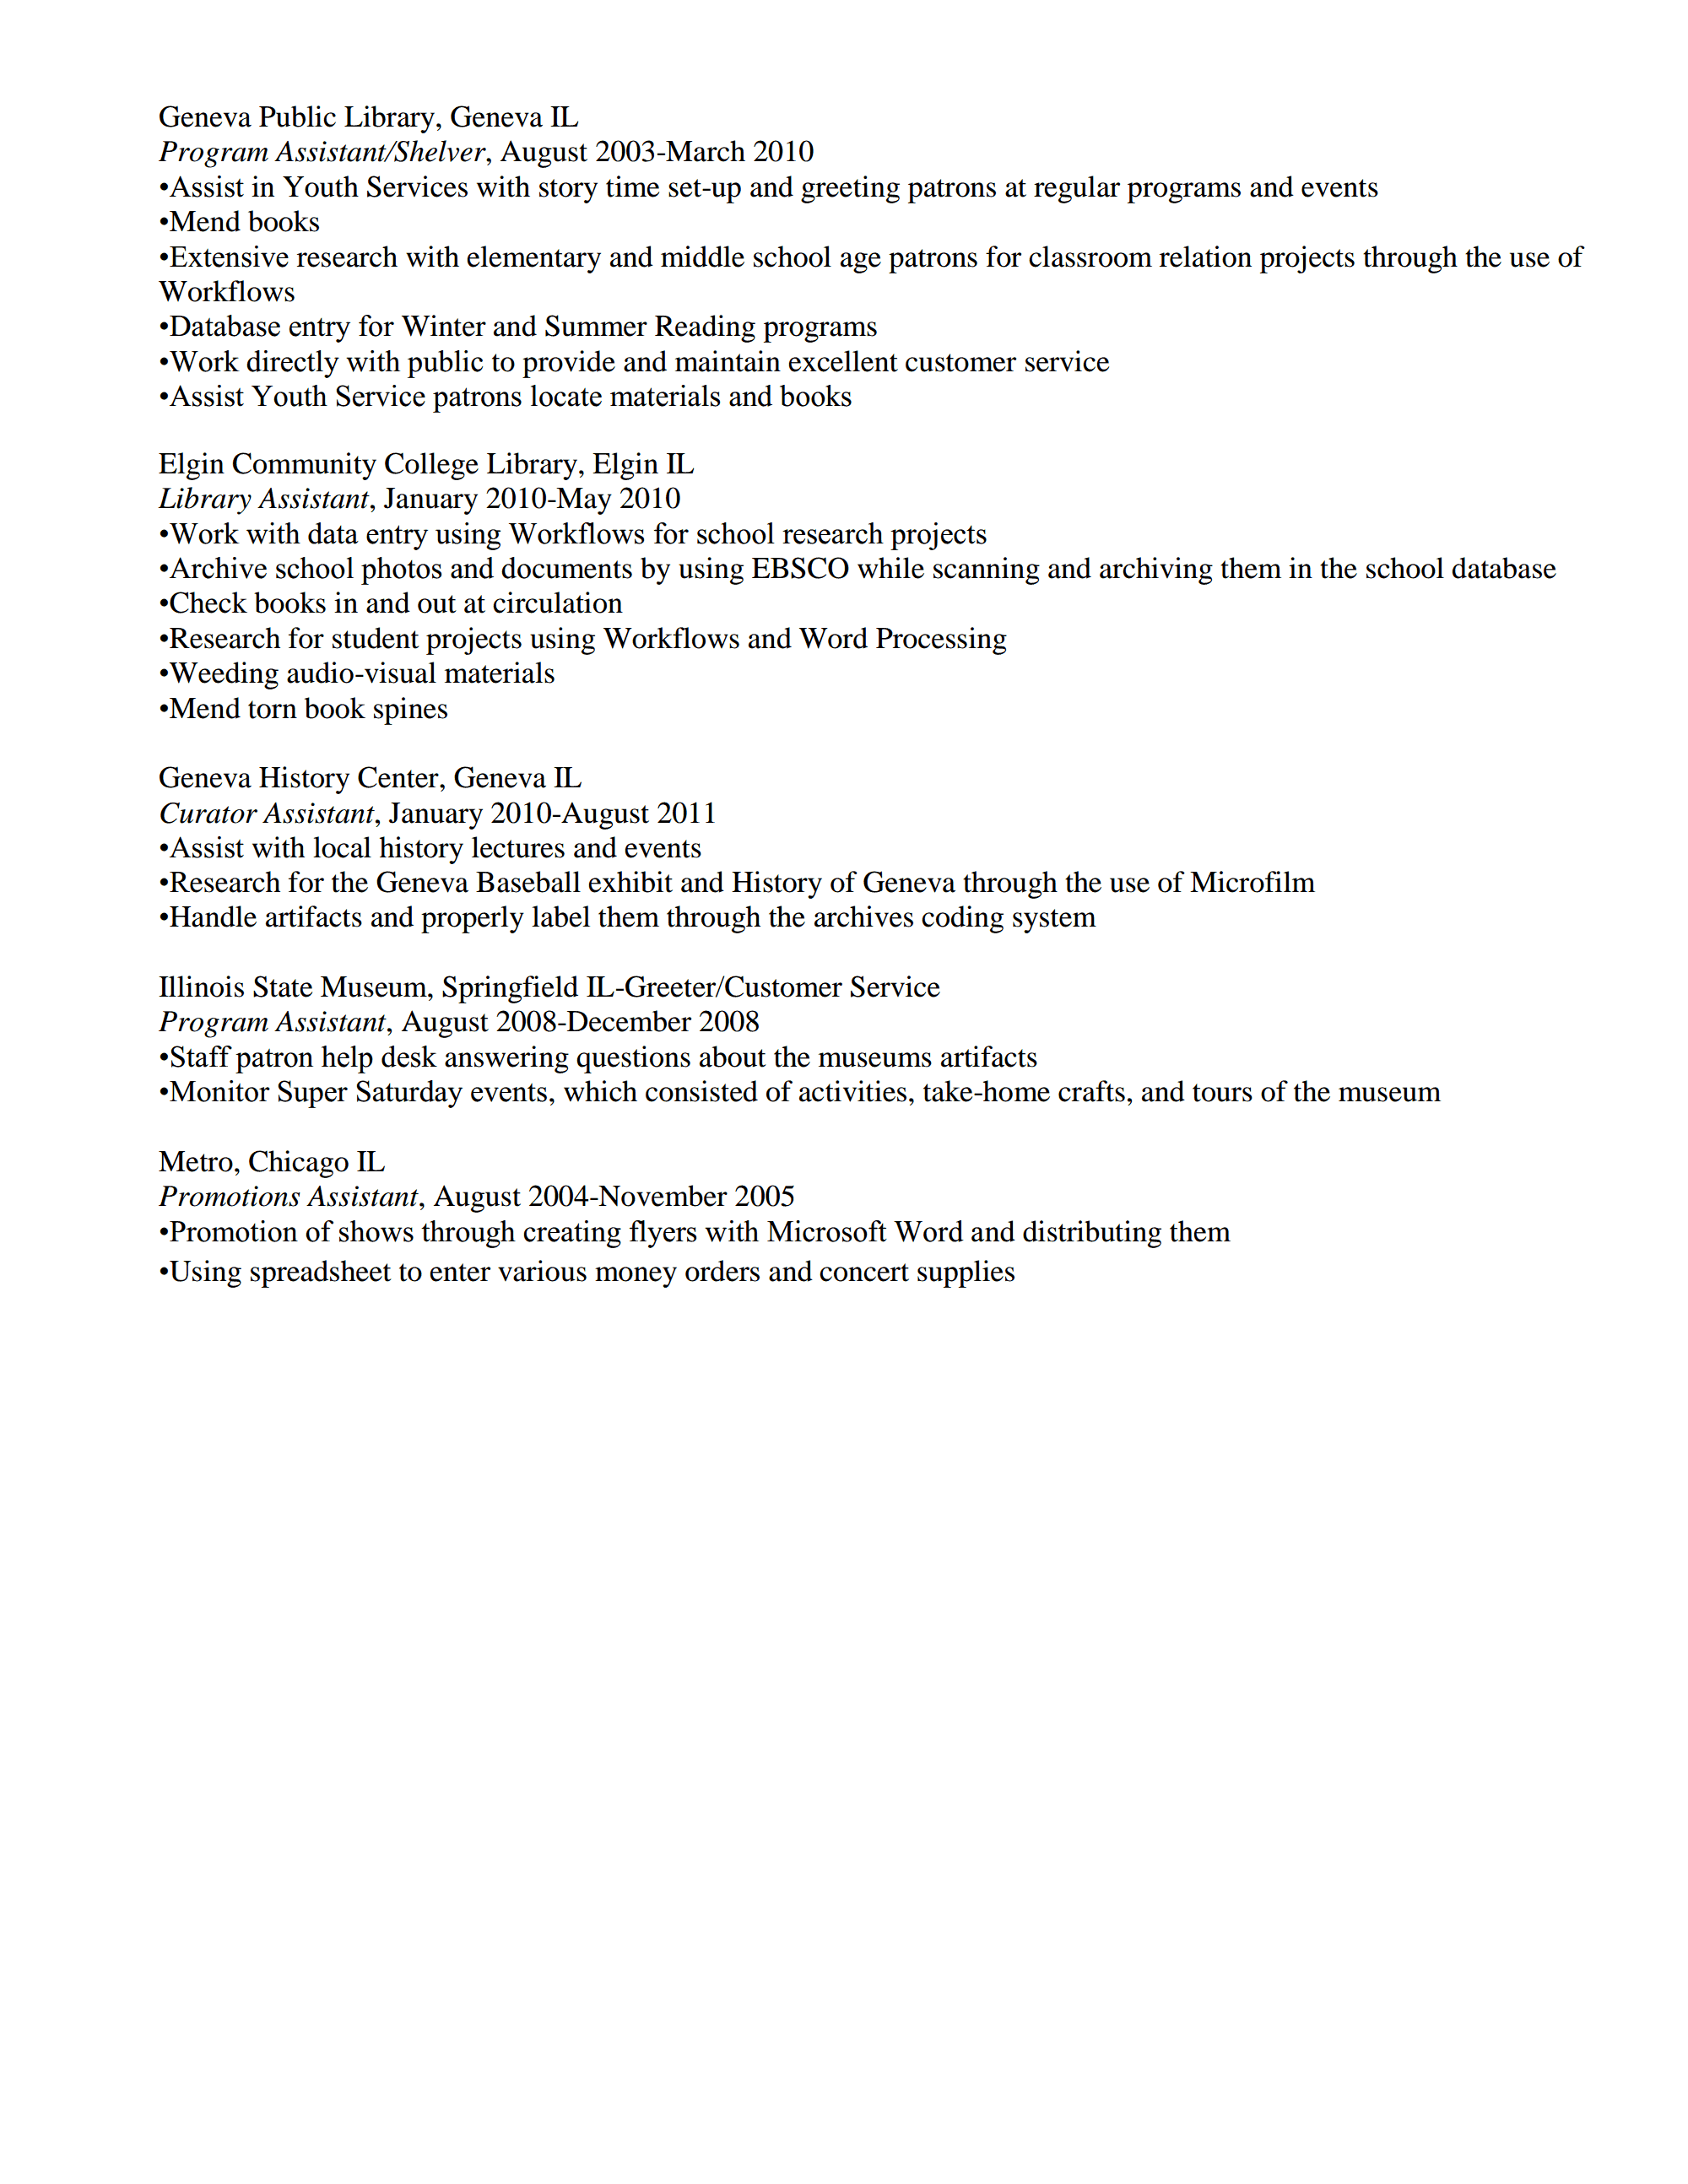 for public review matthew johnson. Resume Example. Resume CV Cover Letter